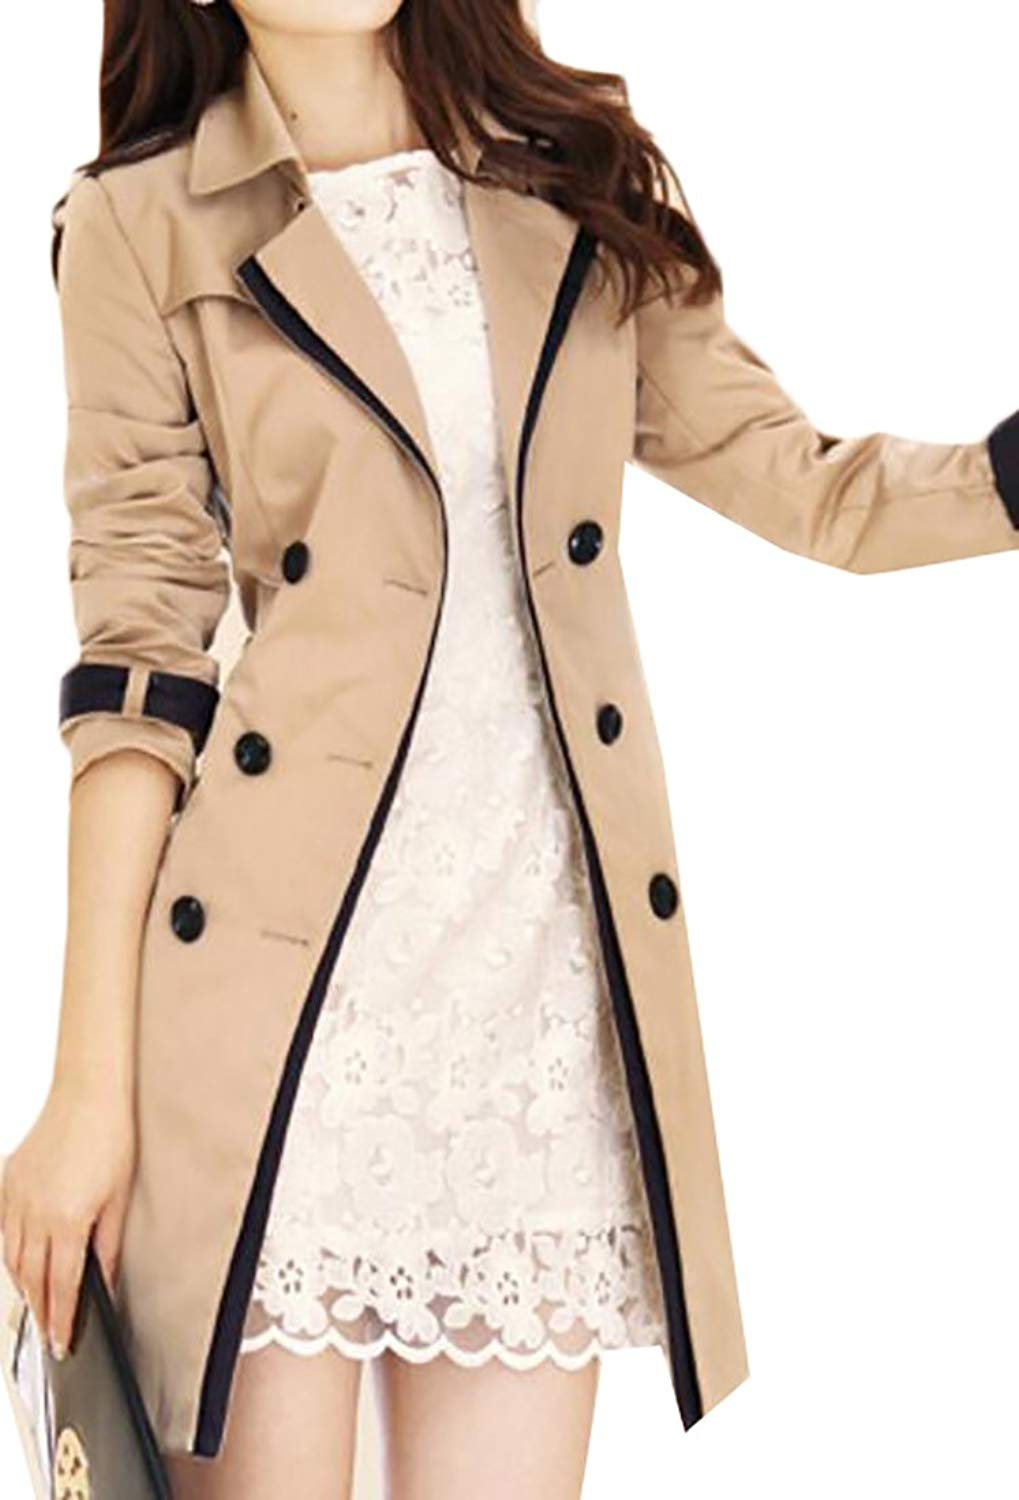 Women's Winter Double Breasted   Trench   Peacoat